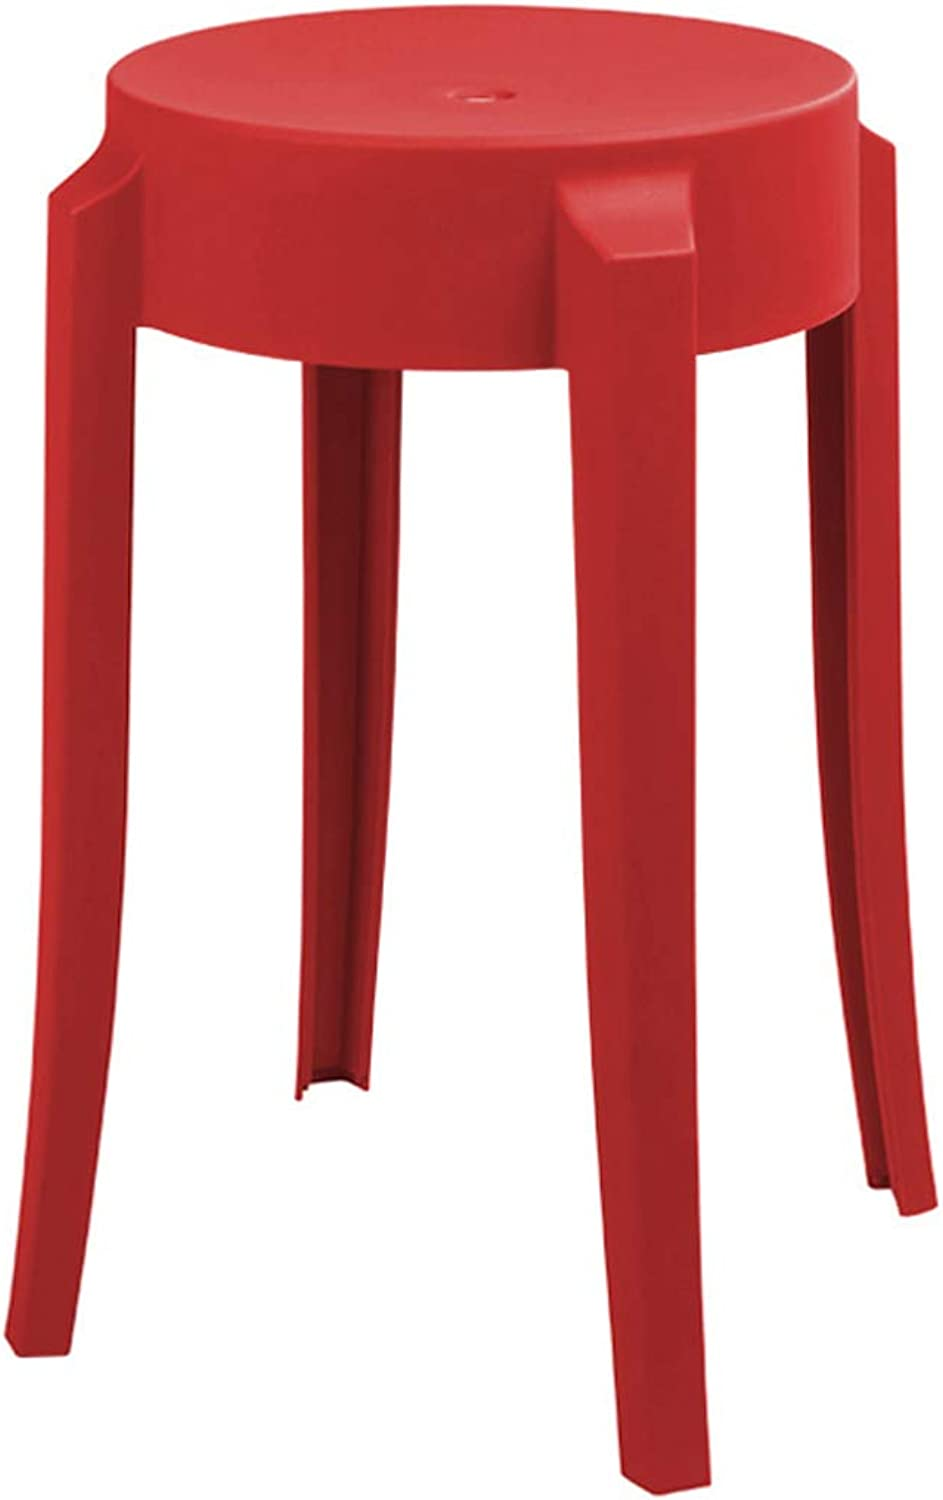 LRW Plastic Stools Thickened Adult Fashionable Small Stools, Modern Household High Stools, European Style Stool Chairs, Red